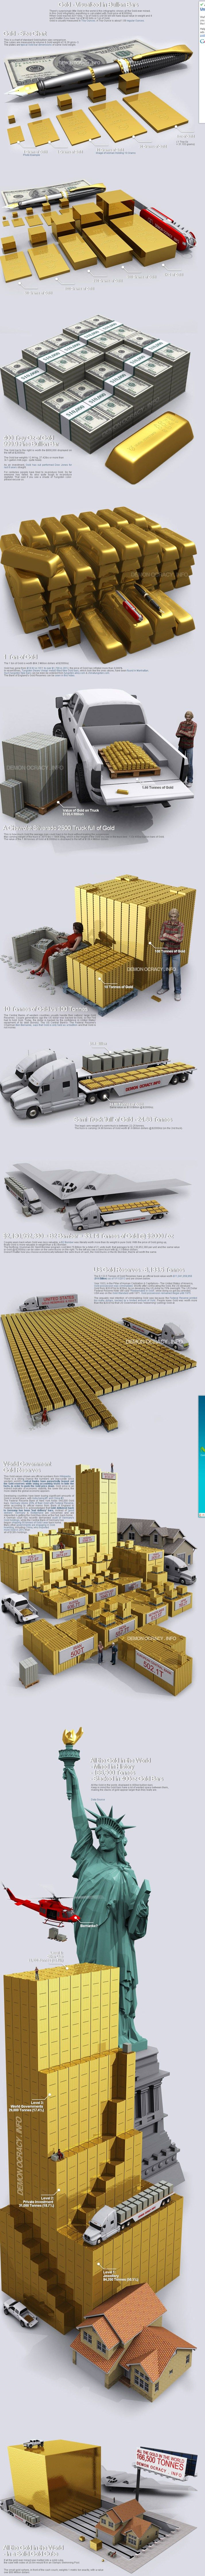 Gold visualizaed in Bullion bars #infografia #infographic...http://therealmoney.online/mm1969/